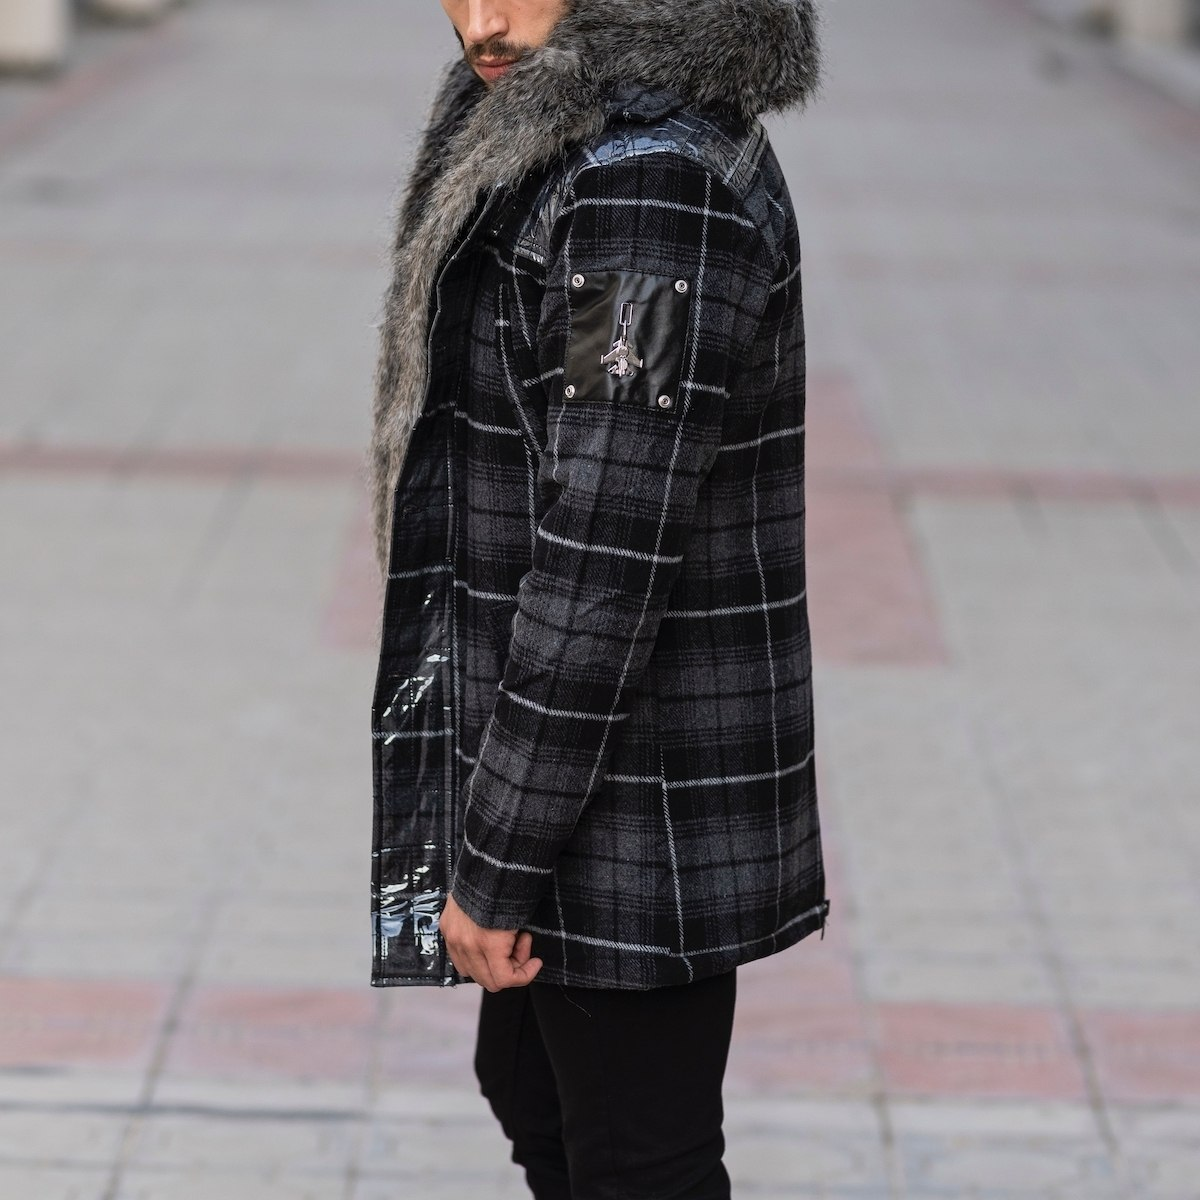 Furry Plaid Jacket With Hood MV Jacket Collection - 4